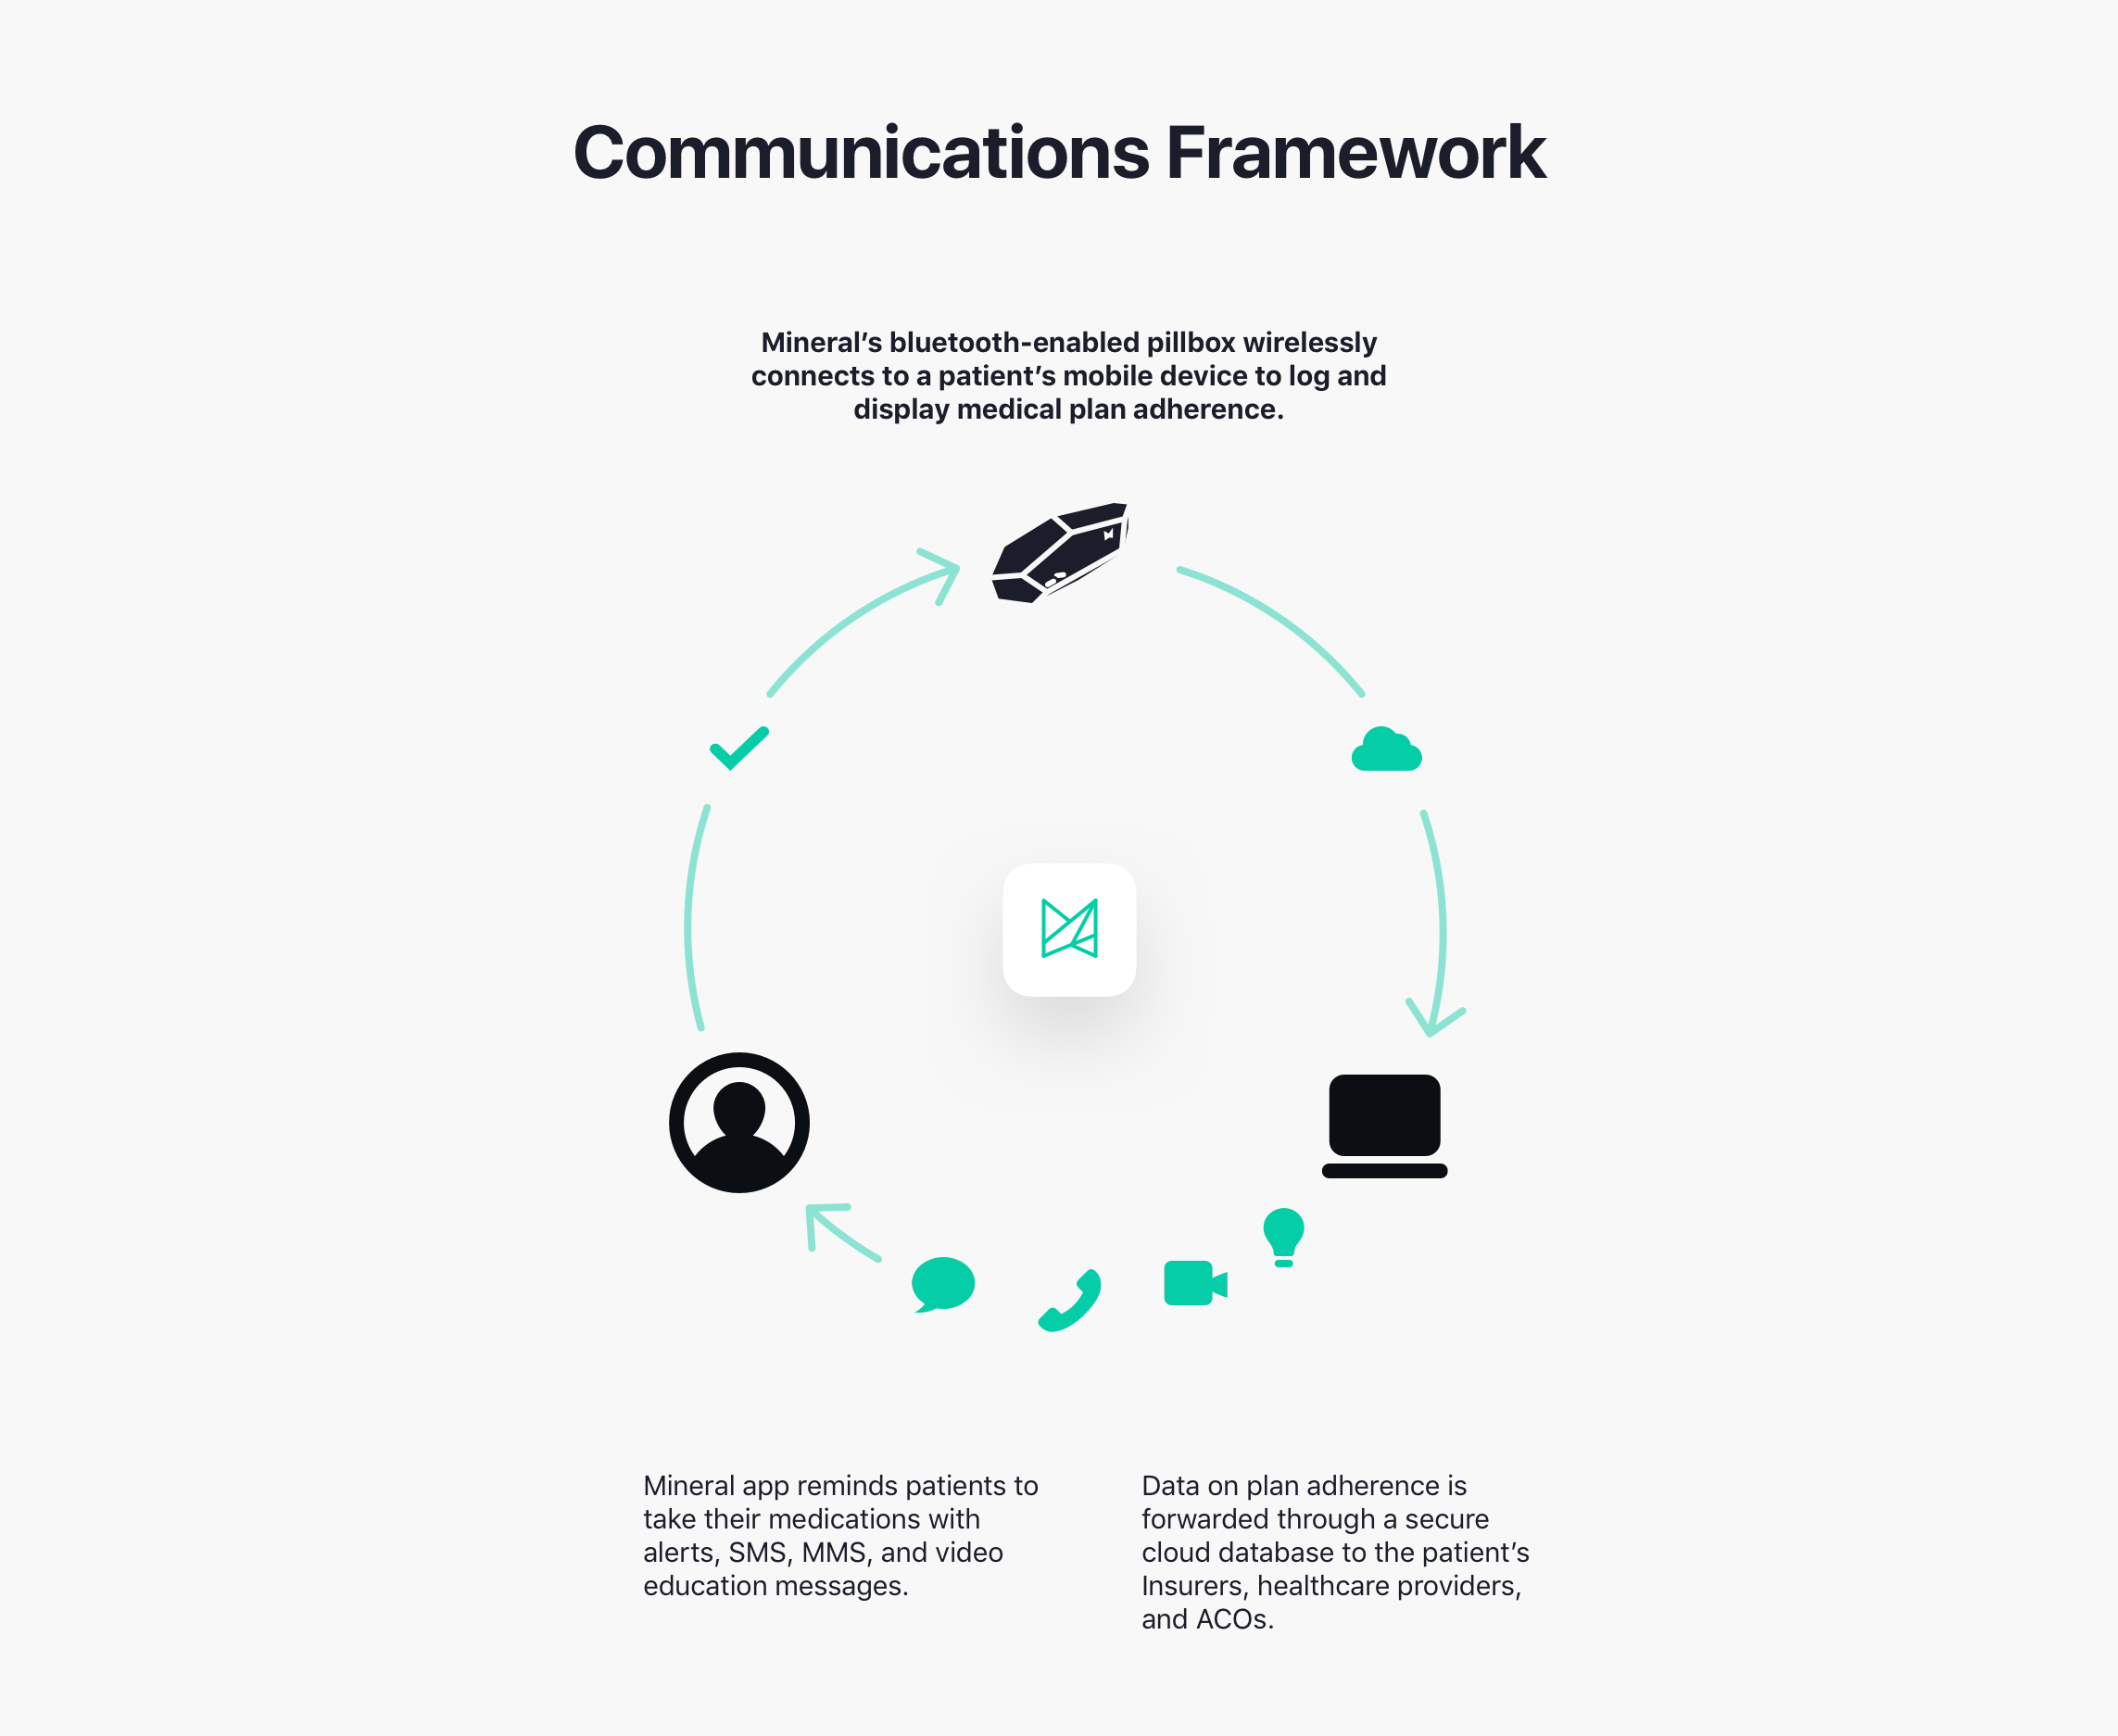 Communications Framework@2x.png